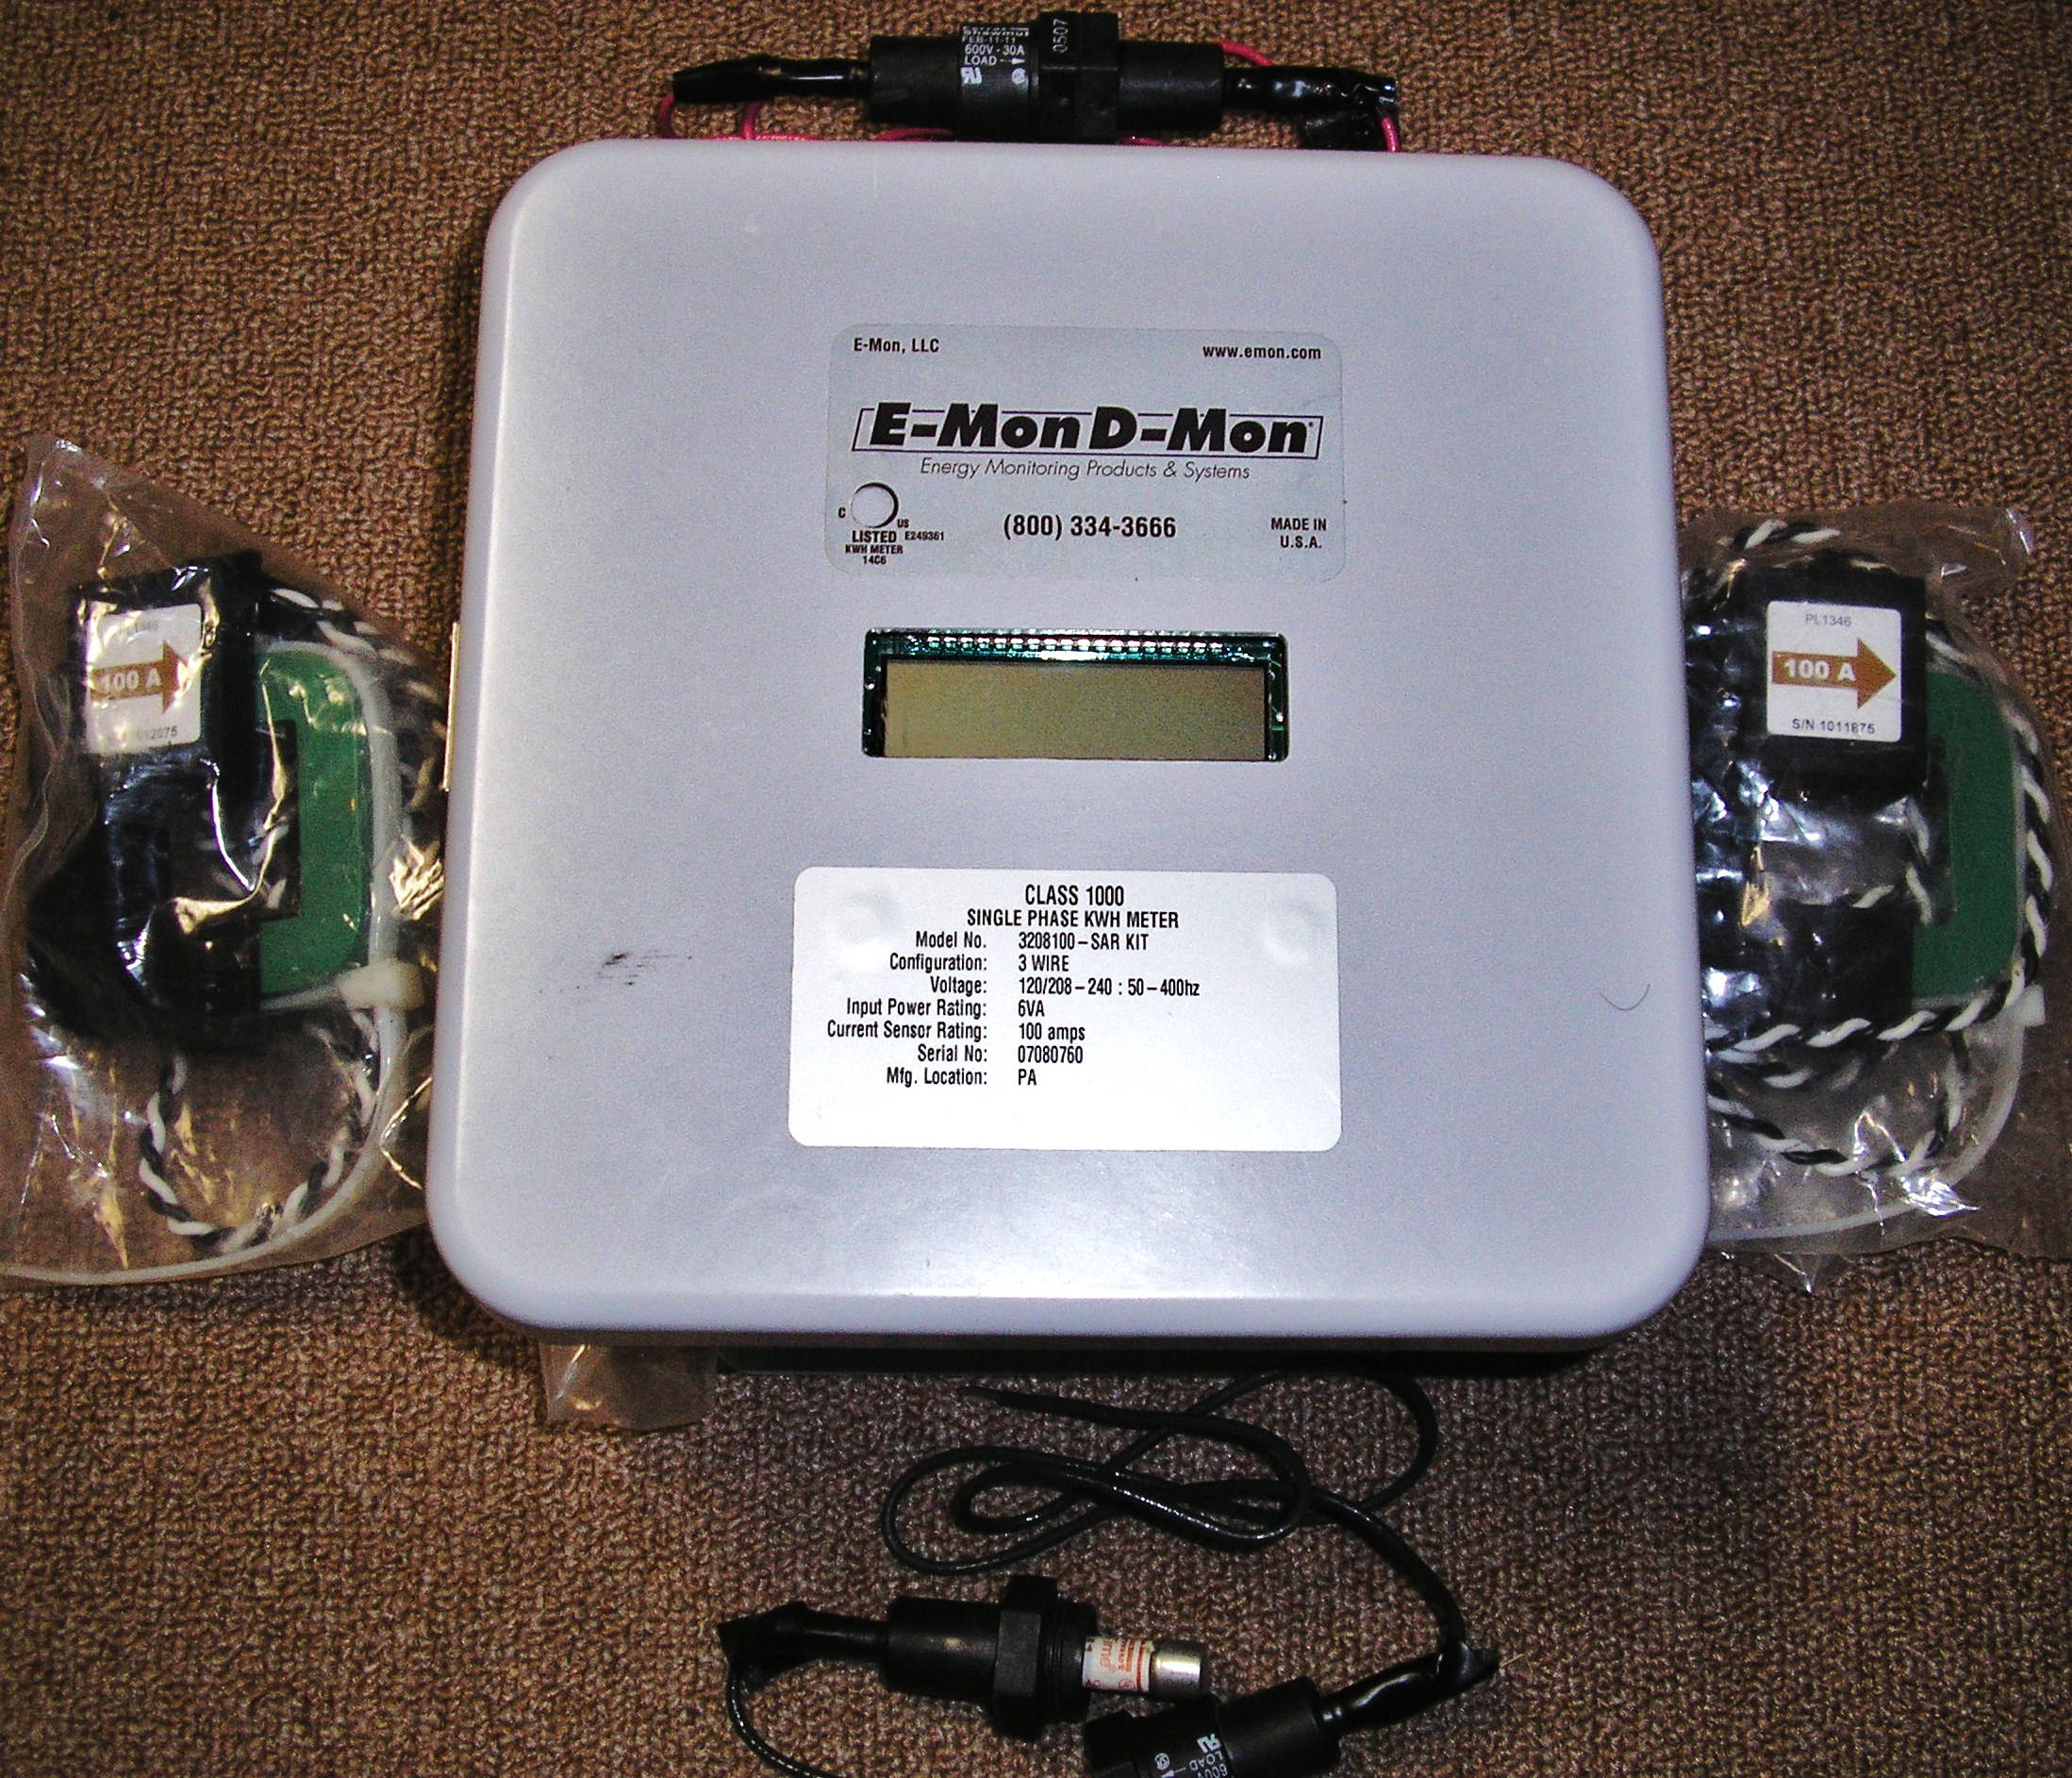 e mon used electric meters emon dmon wiring diagram at readyjetset.co